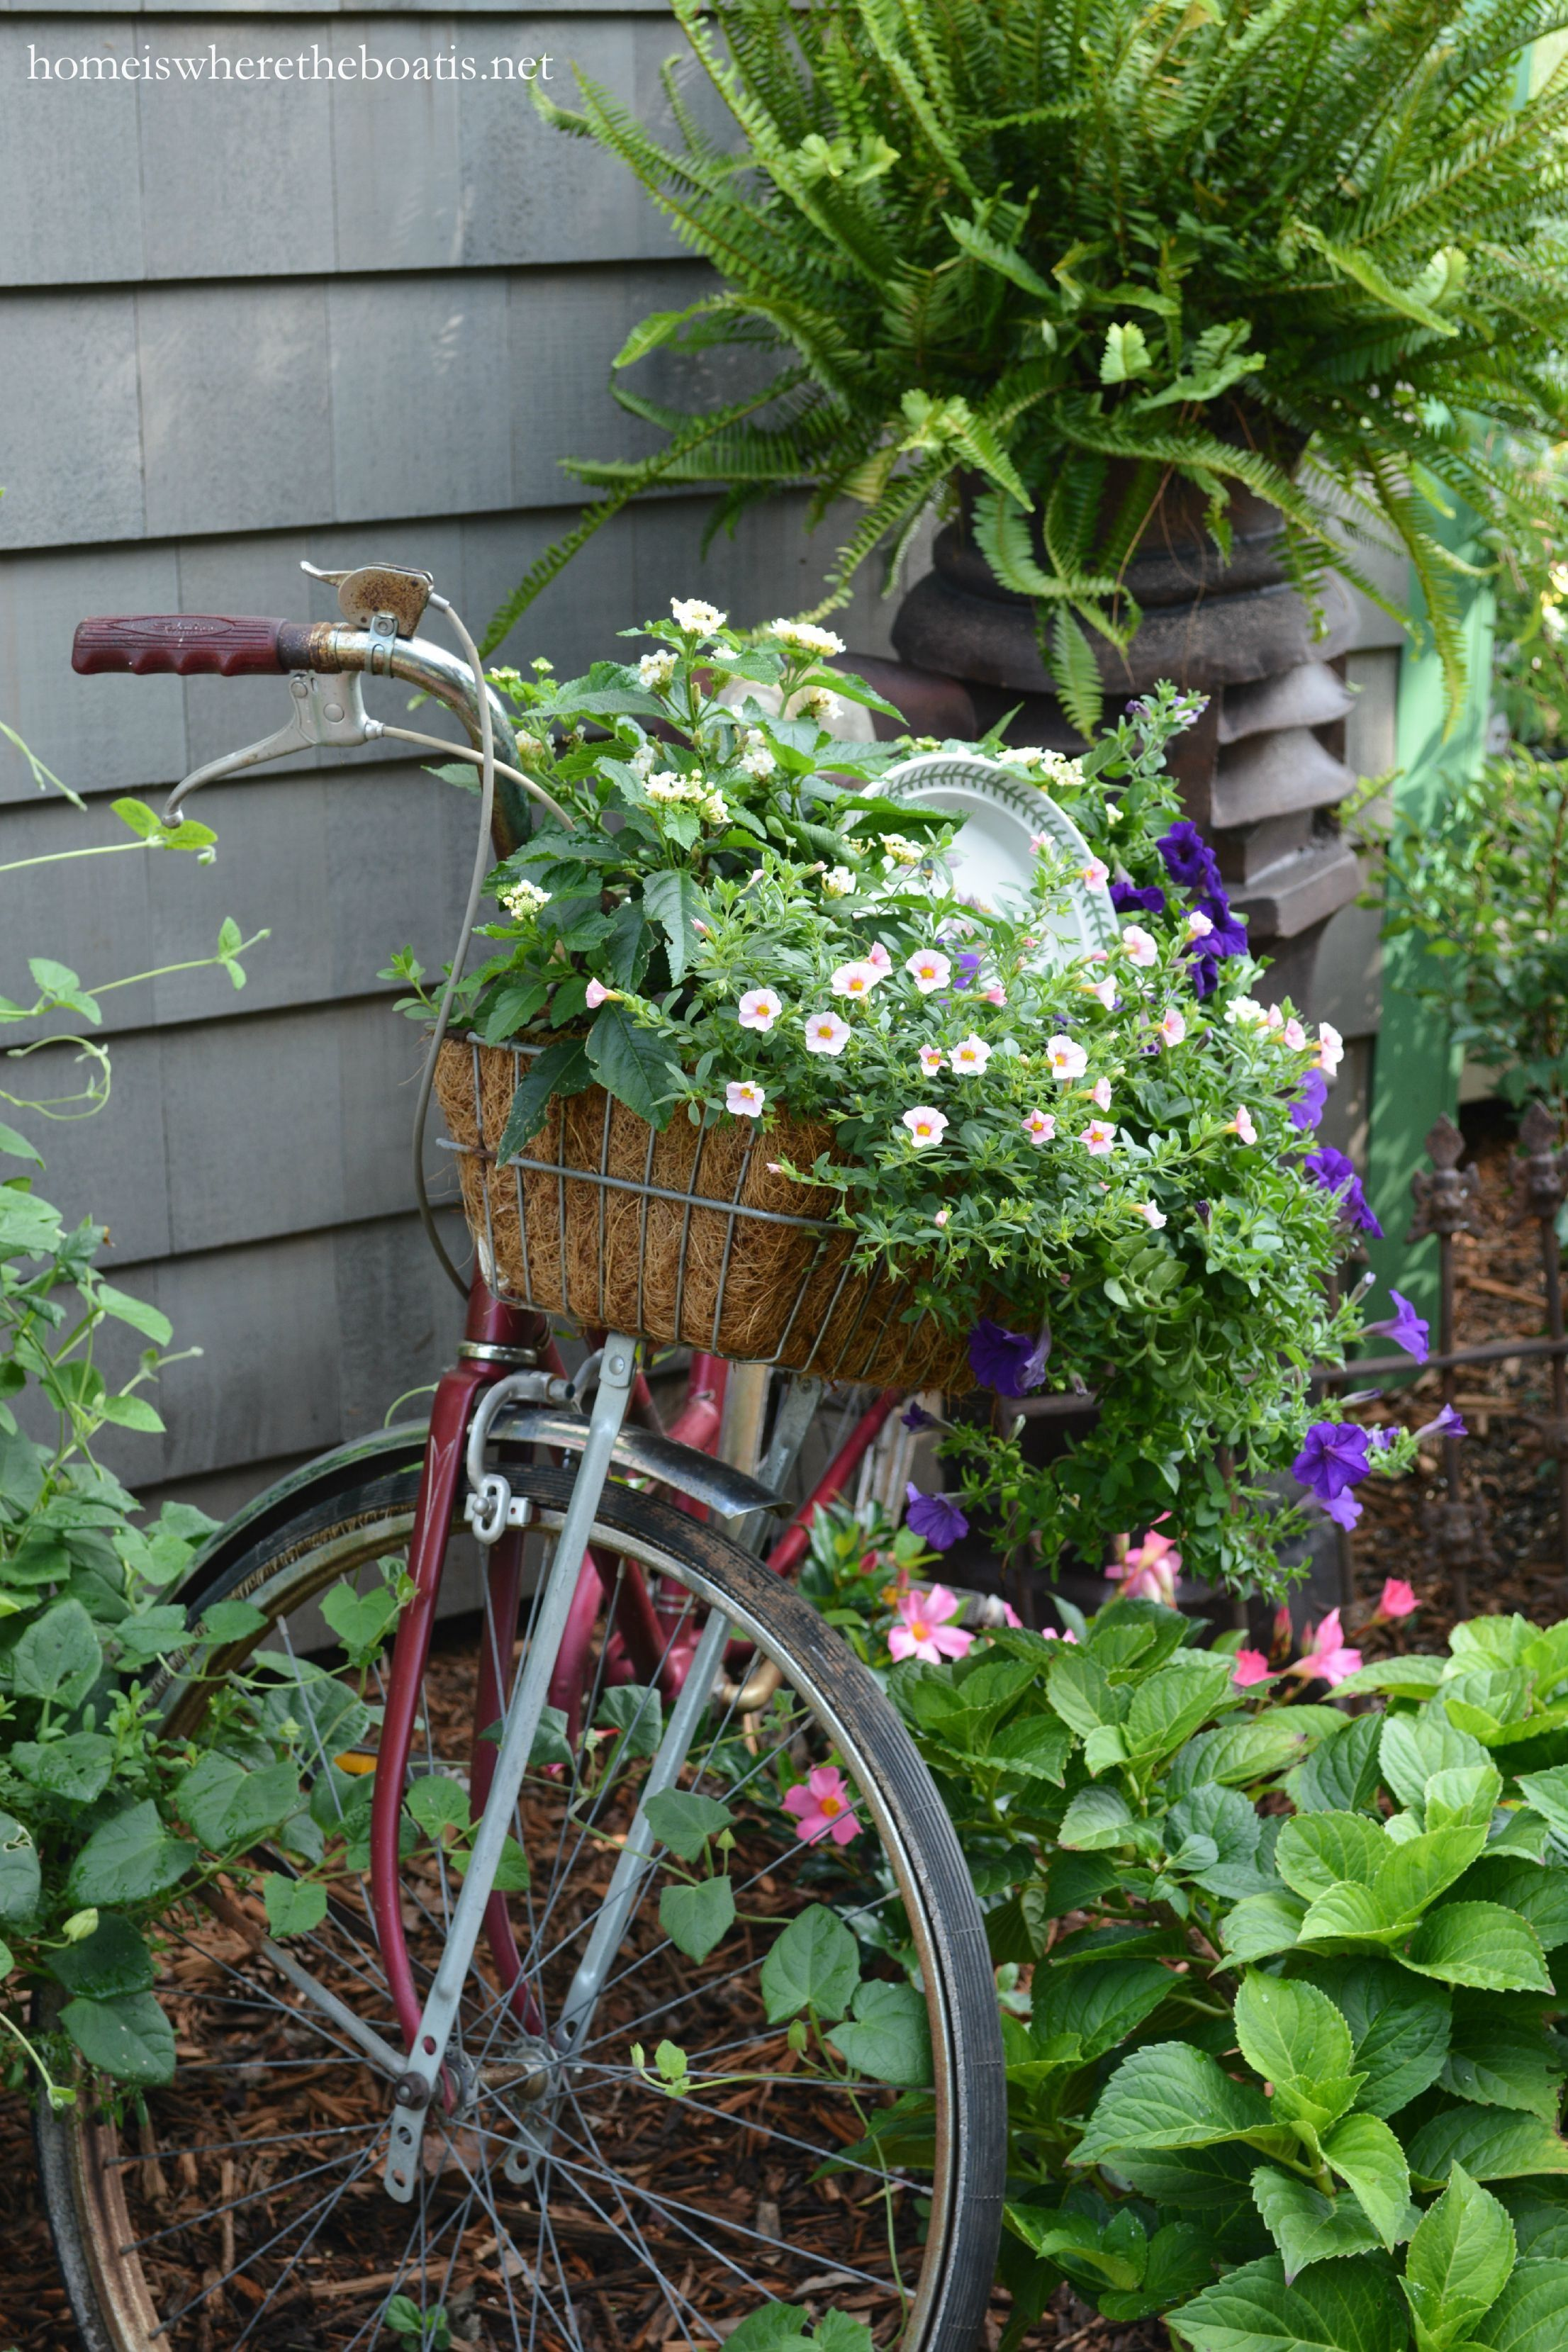 Uncategorized Bicycle Planters gardening on wheels a bicycle planter homeiswheretheboatis net net